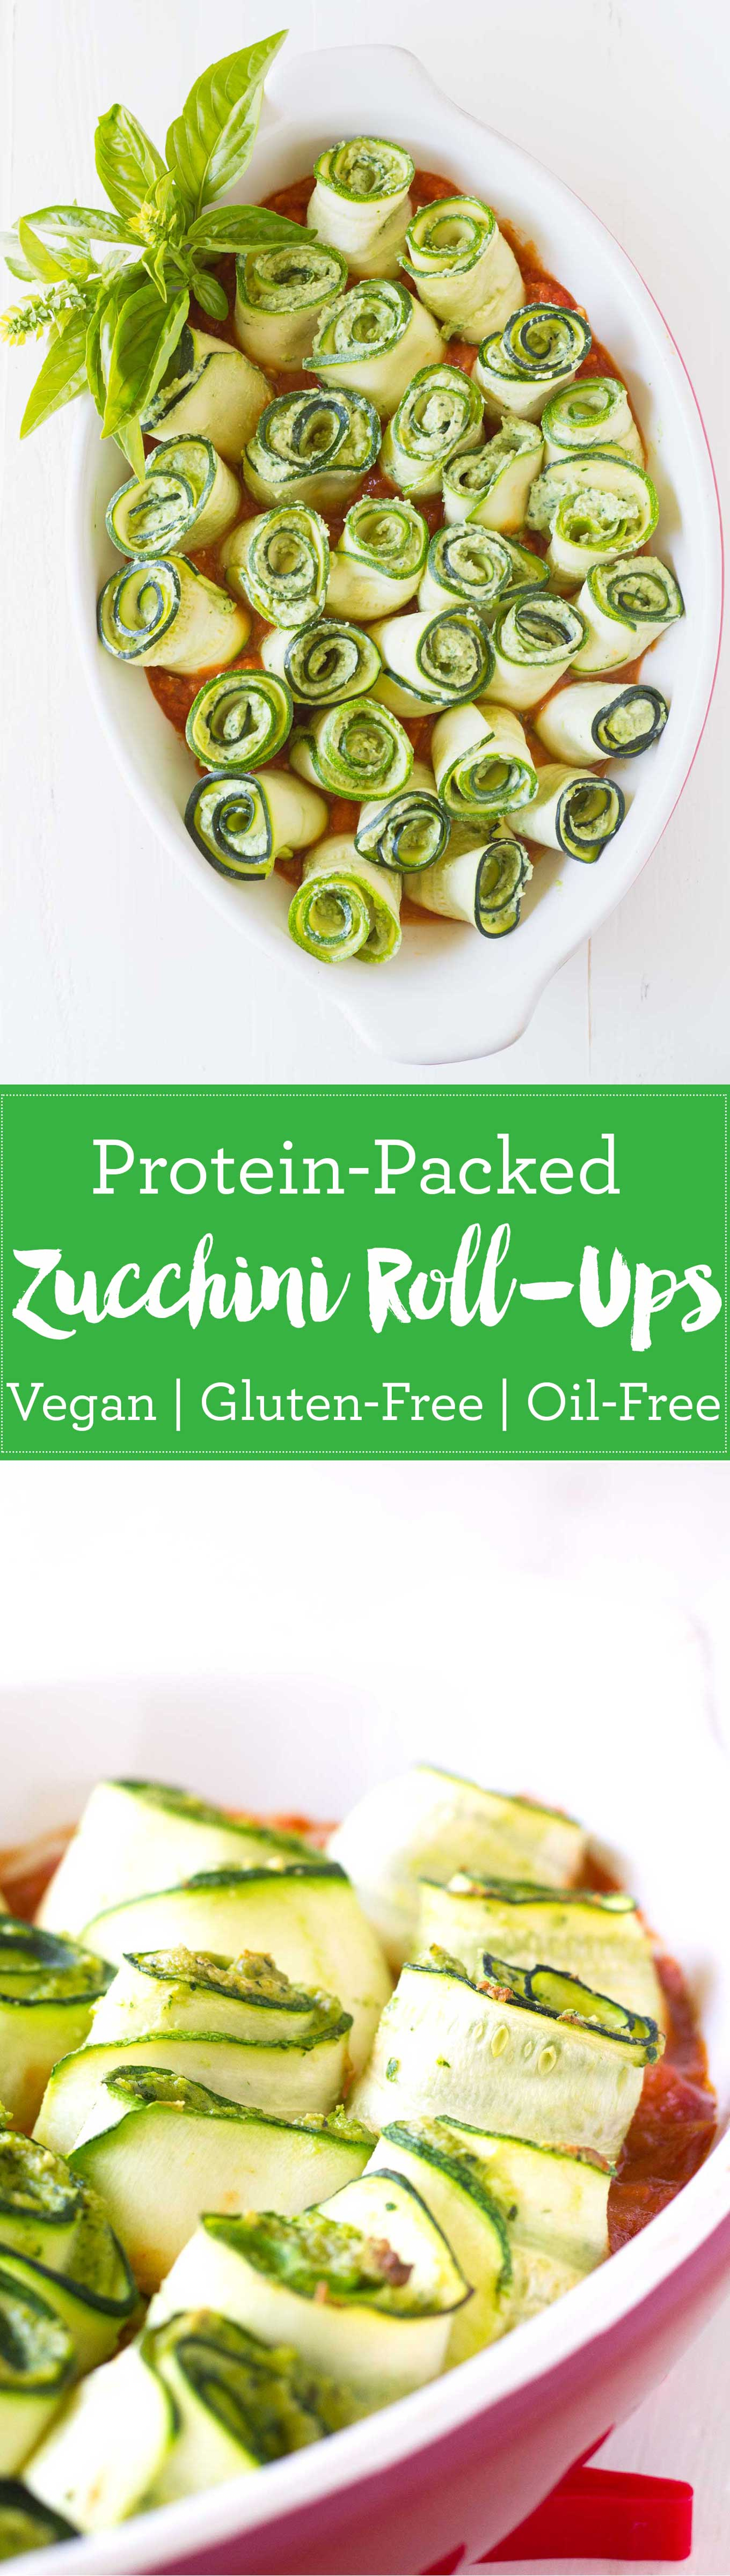 Protein-Packed Zucchini Roll-Ups | Vegan, Gluten-free | https://eatwithinyourmeans.com